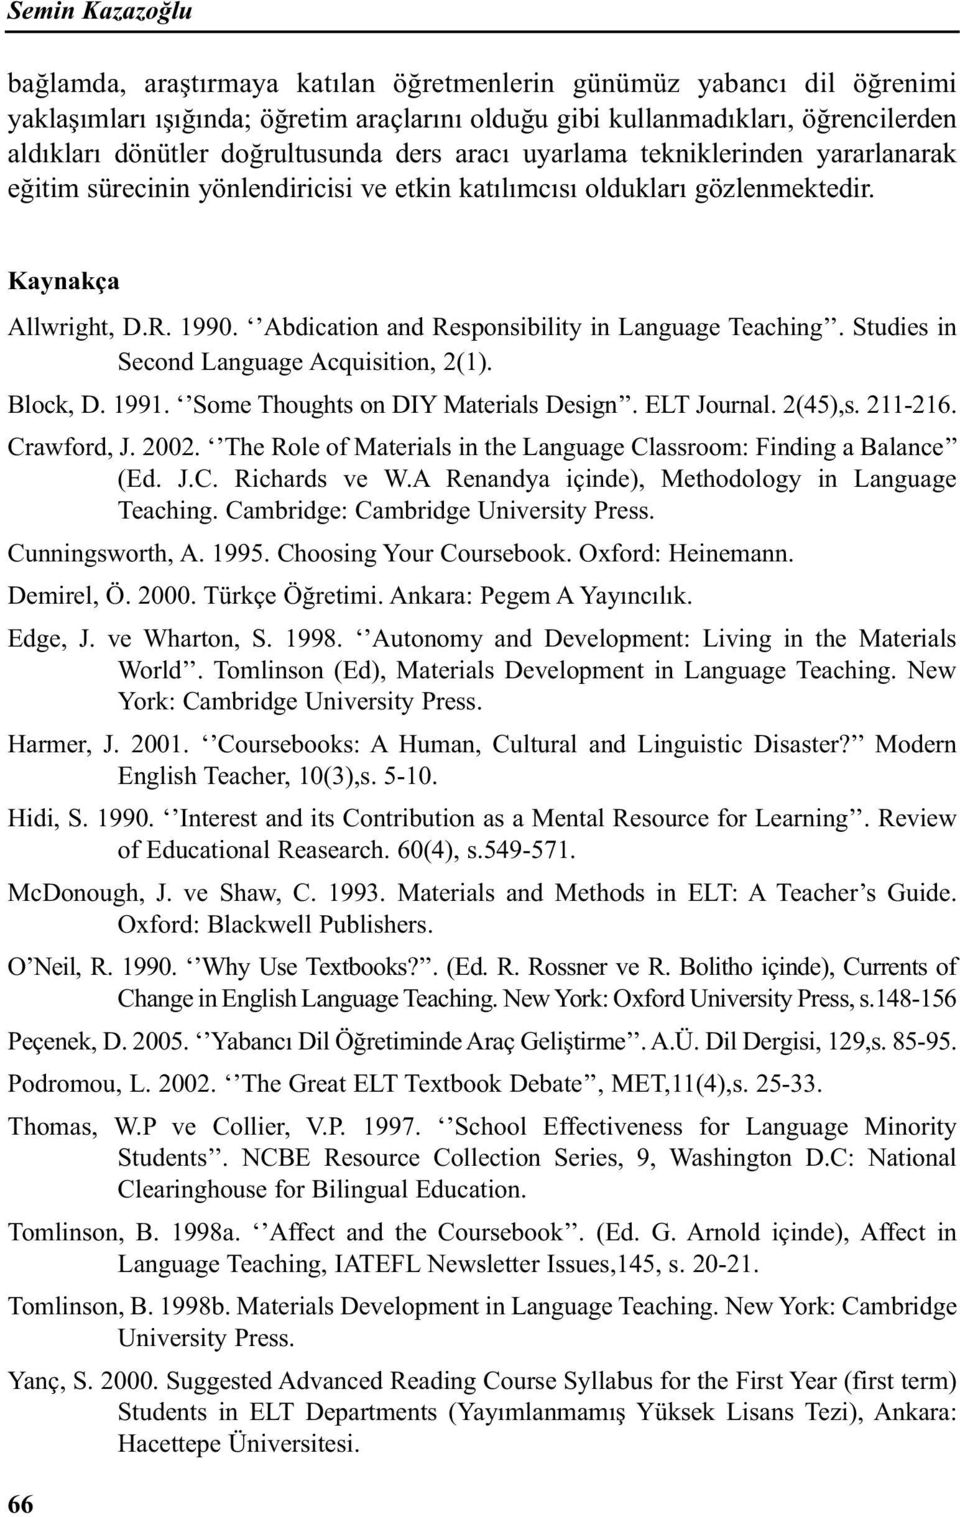 Abdication and Responsibility in Language Teaching. Studies in Second Language Acquisition, 2(1). Block, D. 1991. Some Thoughts on DIY Materials Design. ELT Journal. 2(45),s. 211-216. Crawford, J.